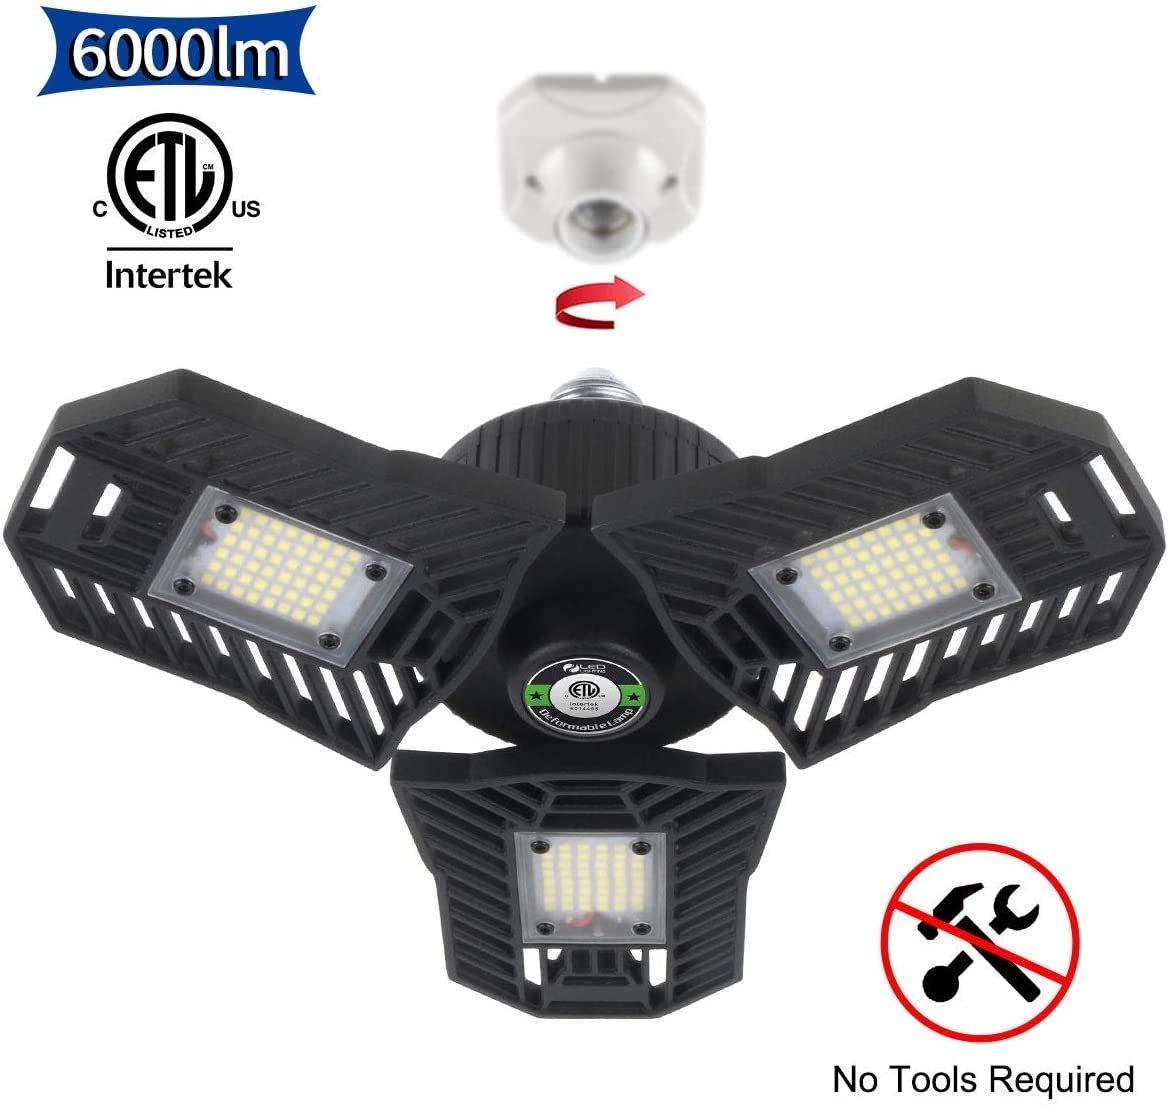 Falive Garage Lighting 60W 6000 Lumens Three Leaf Garage Light Super Bright Led